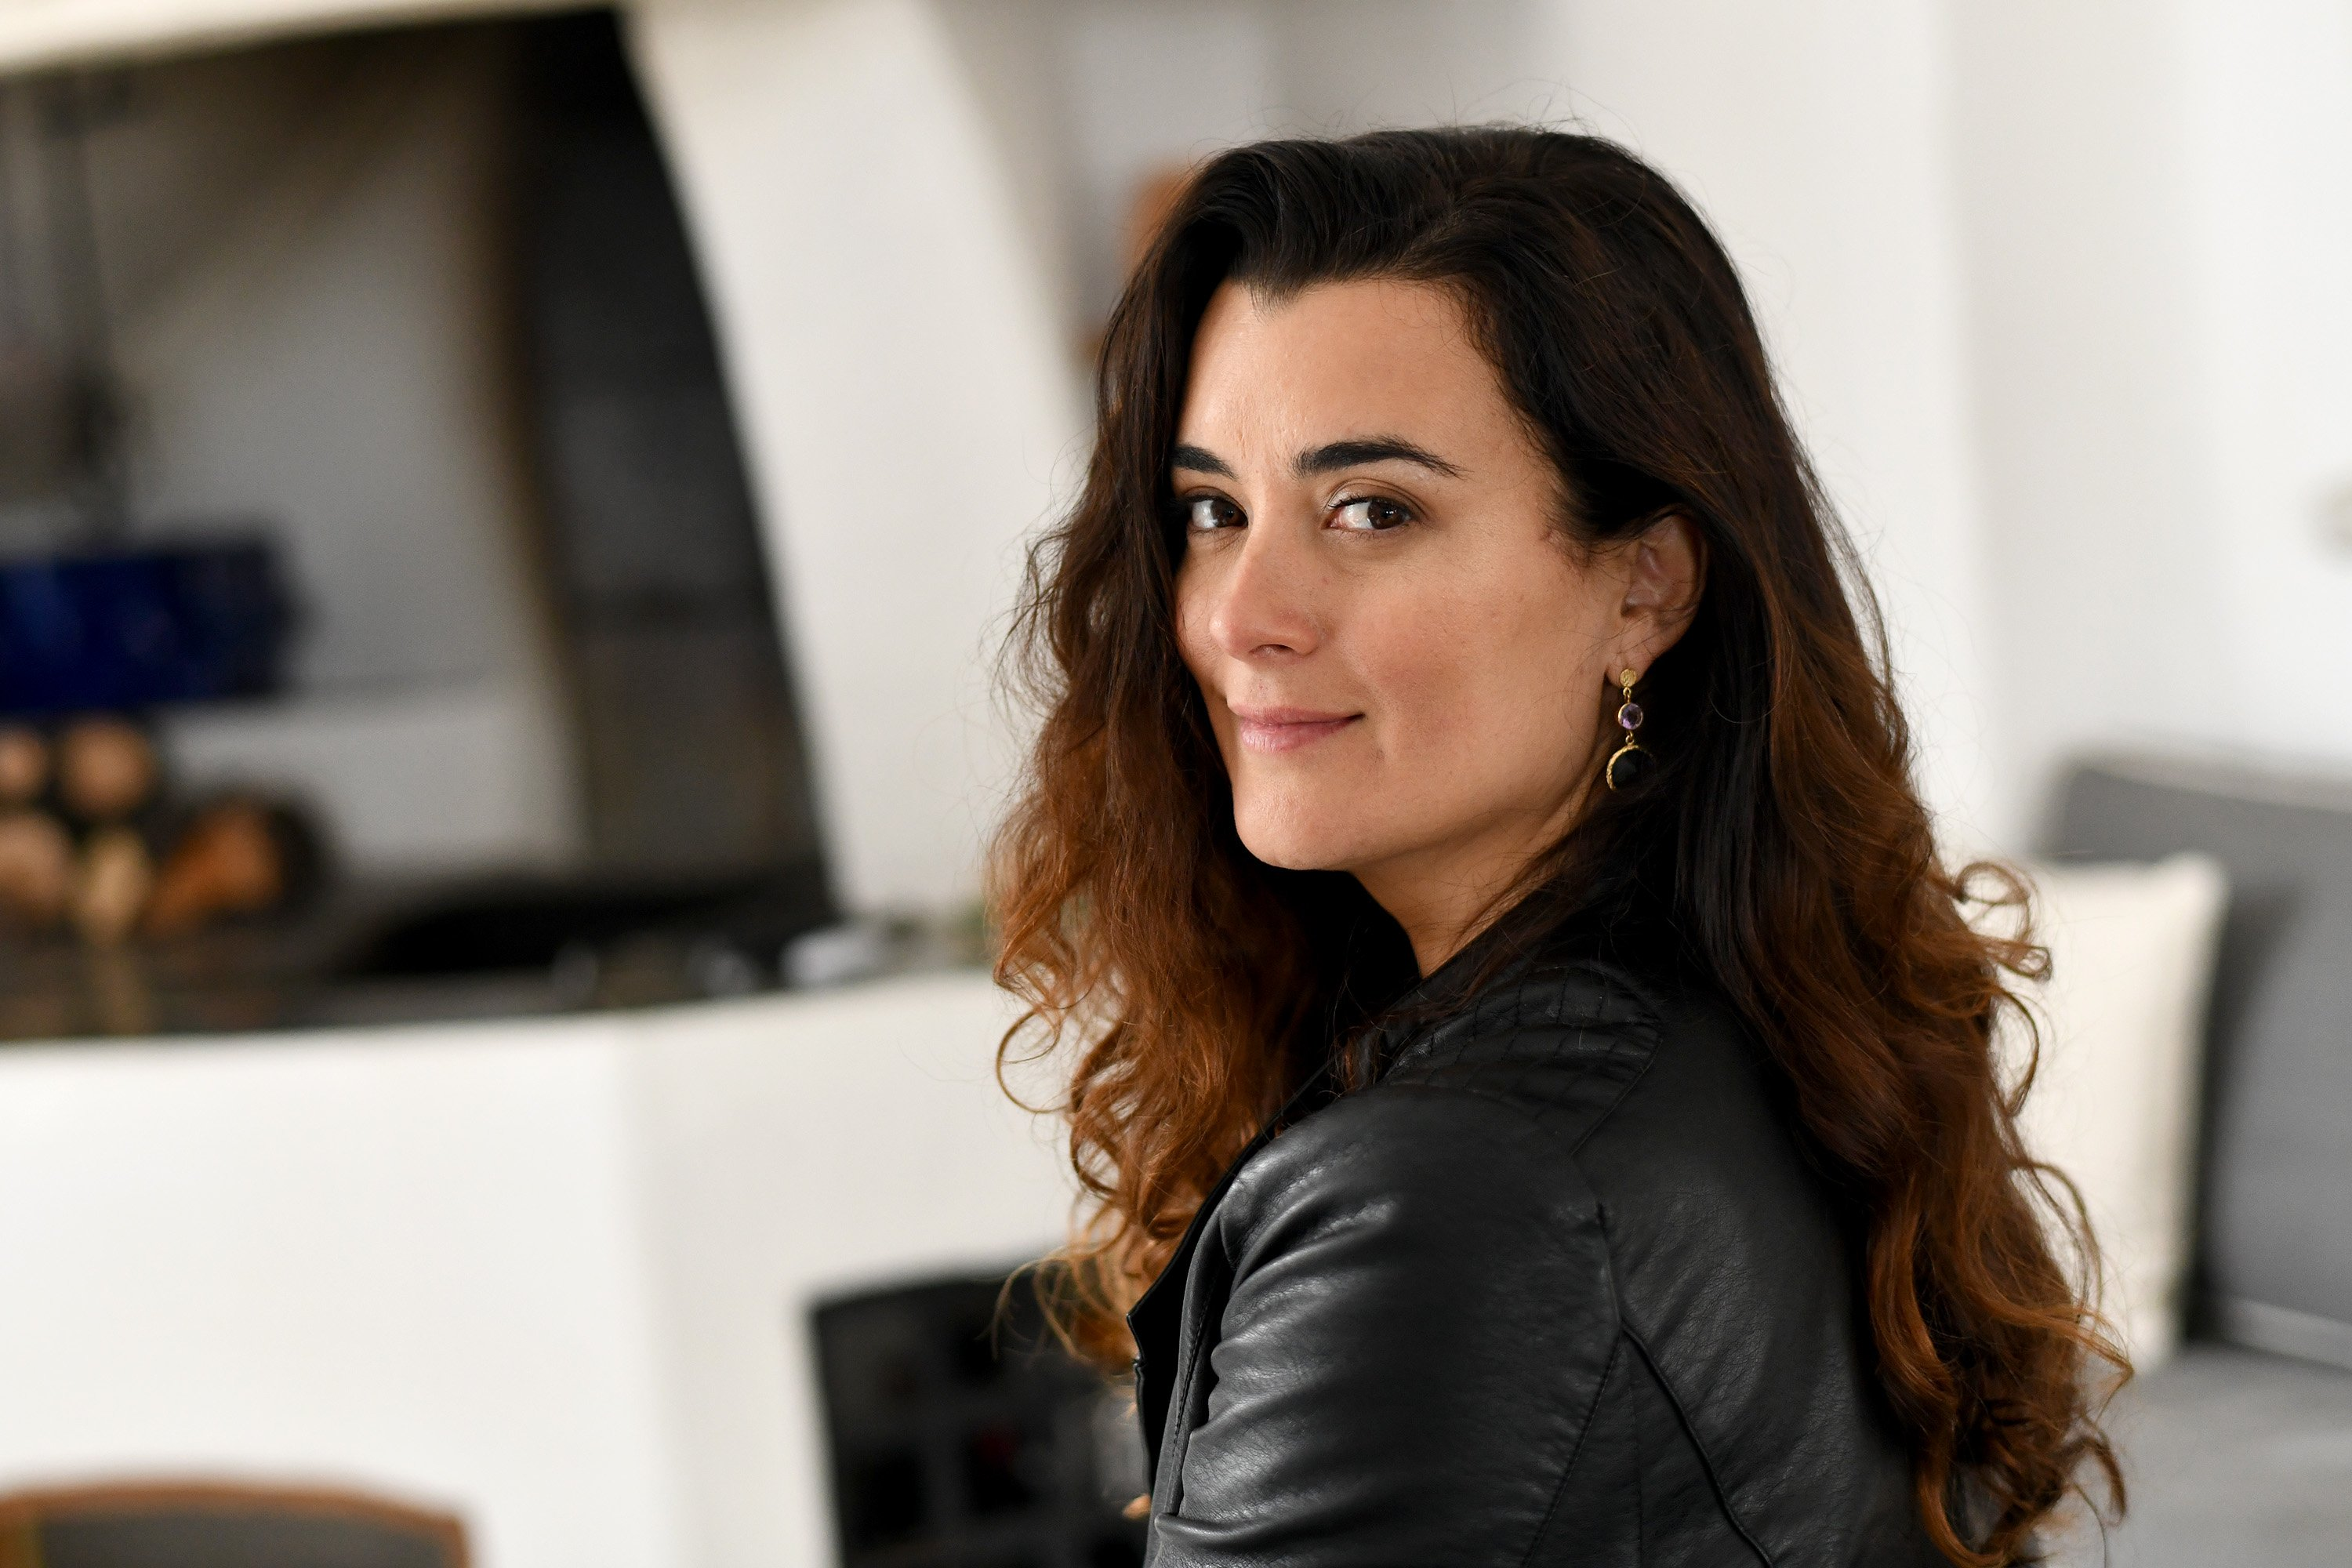 Cote De Pablo poses for a portrait session during the Riviera International Film Festival on May 2, 2018 | Photo: GettyImages